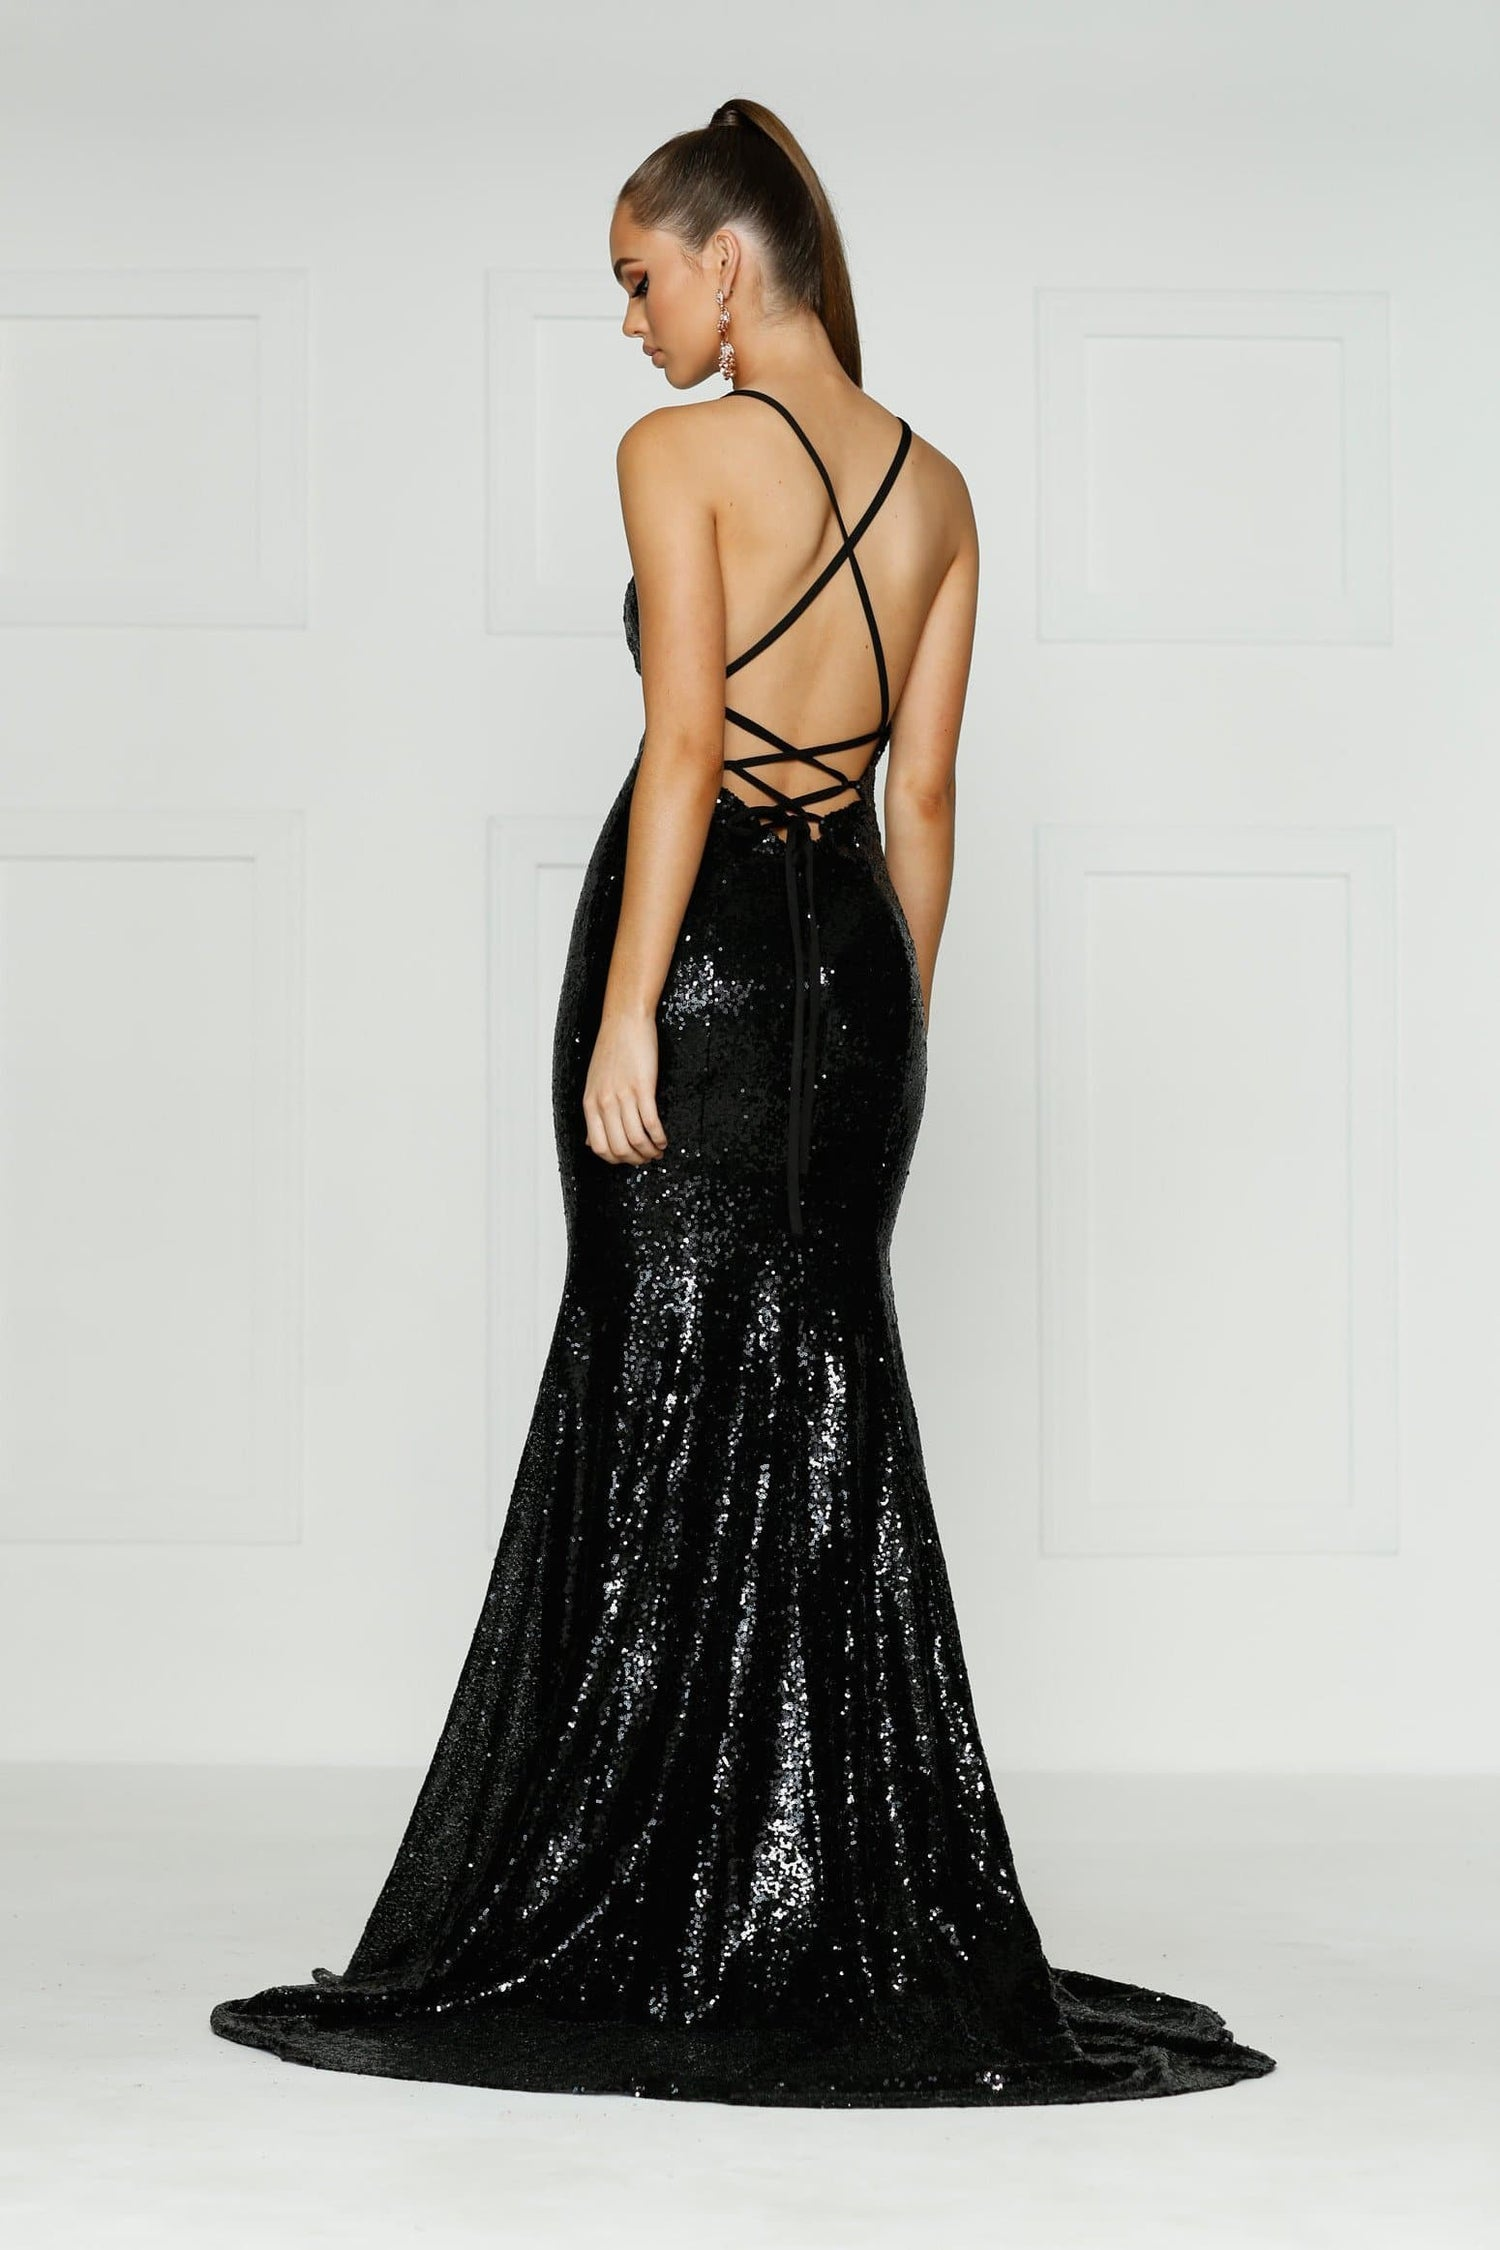 c5ef32e9 A&N Kendall - Black Sequin Dress with V Neck and Criss Cross Back ...